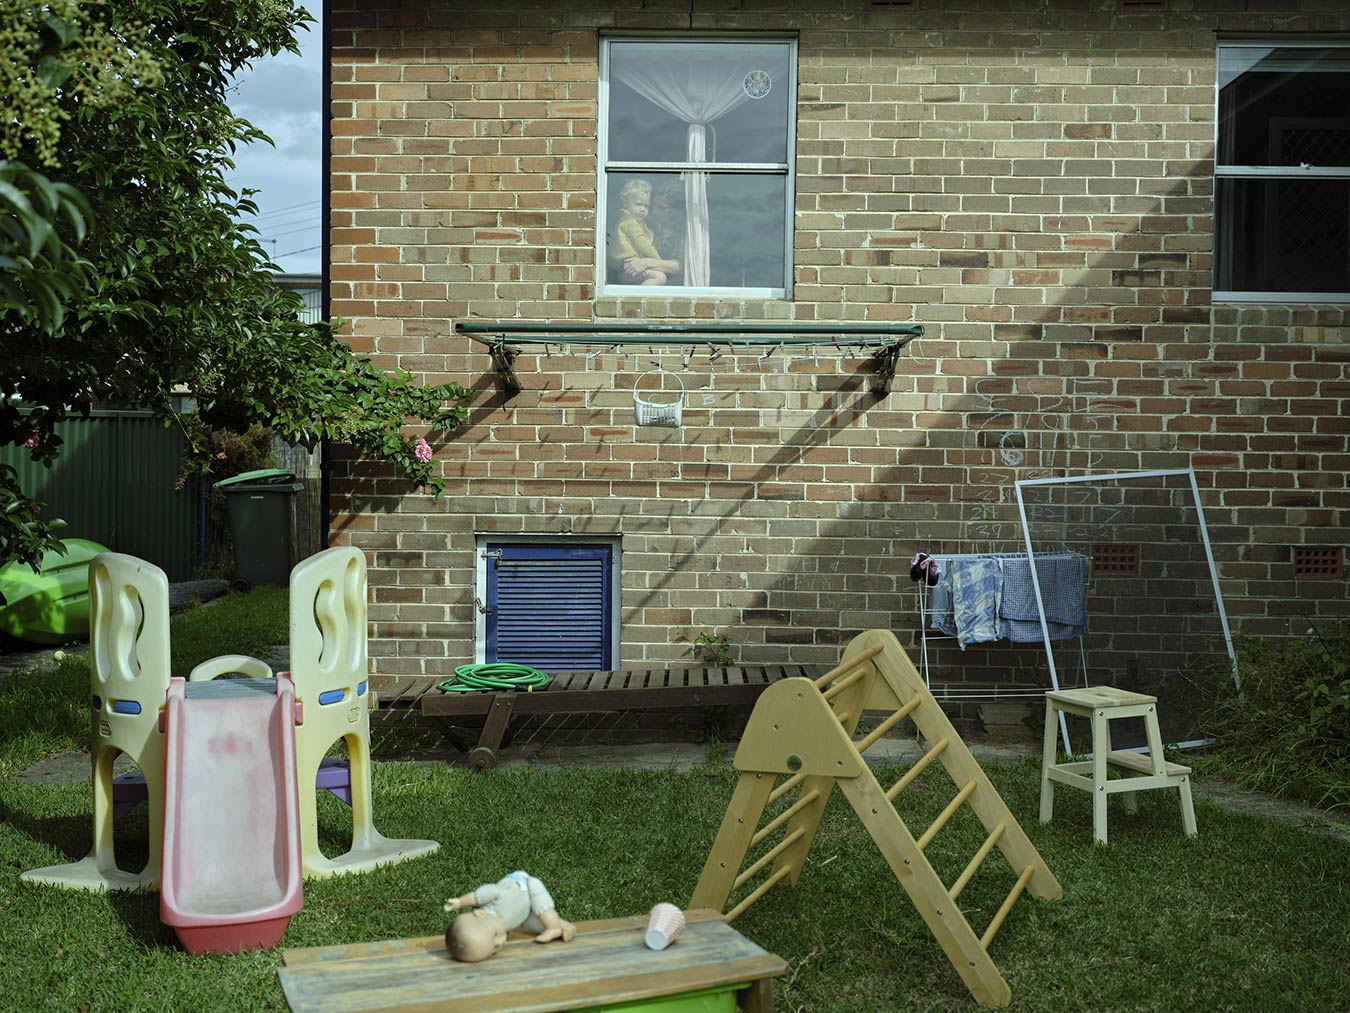 backyard-with-scattered-toys-woman-and-child-in-window